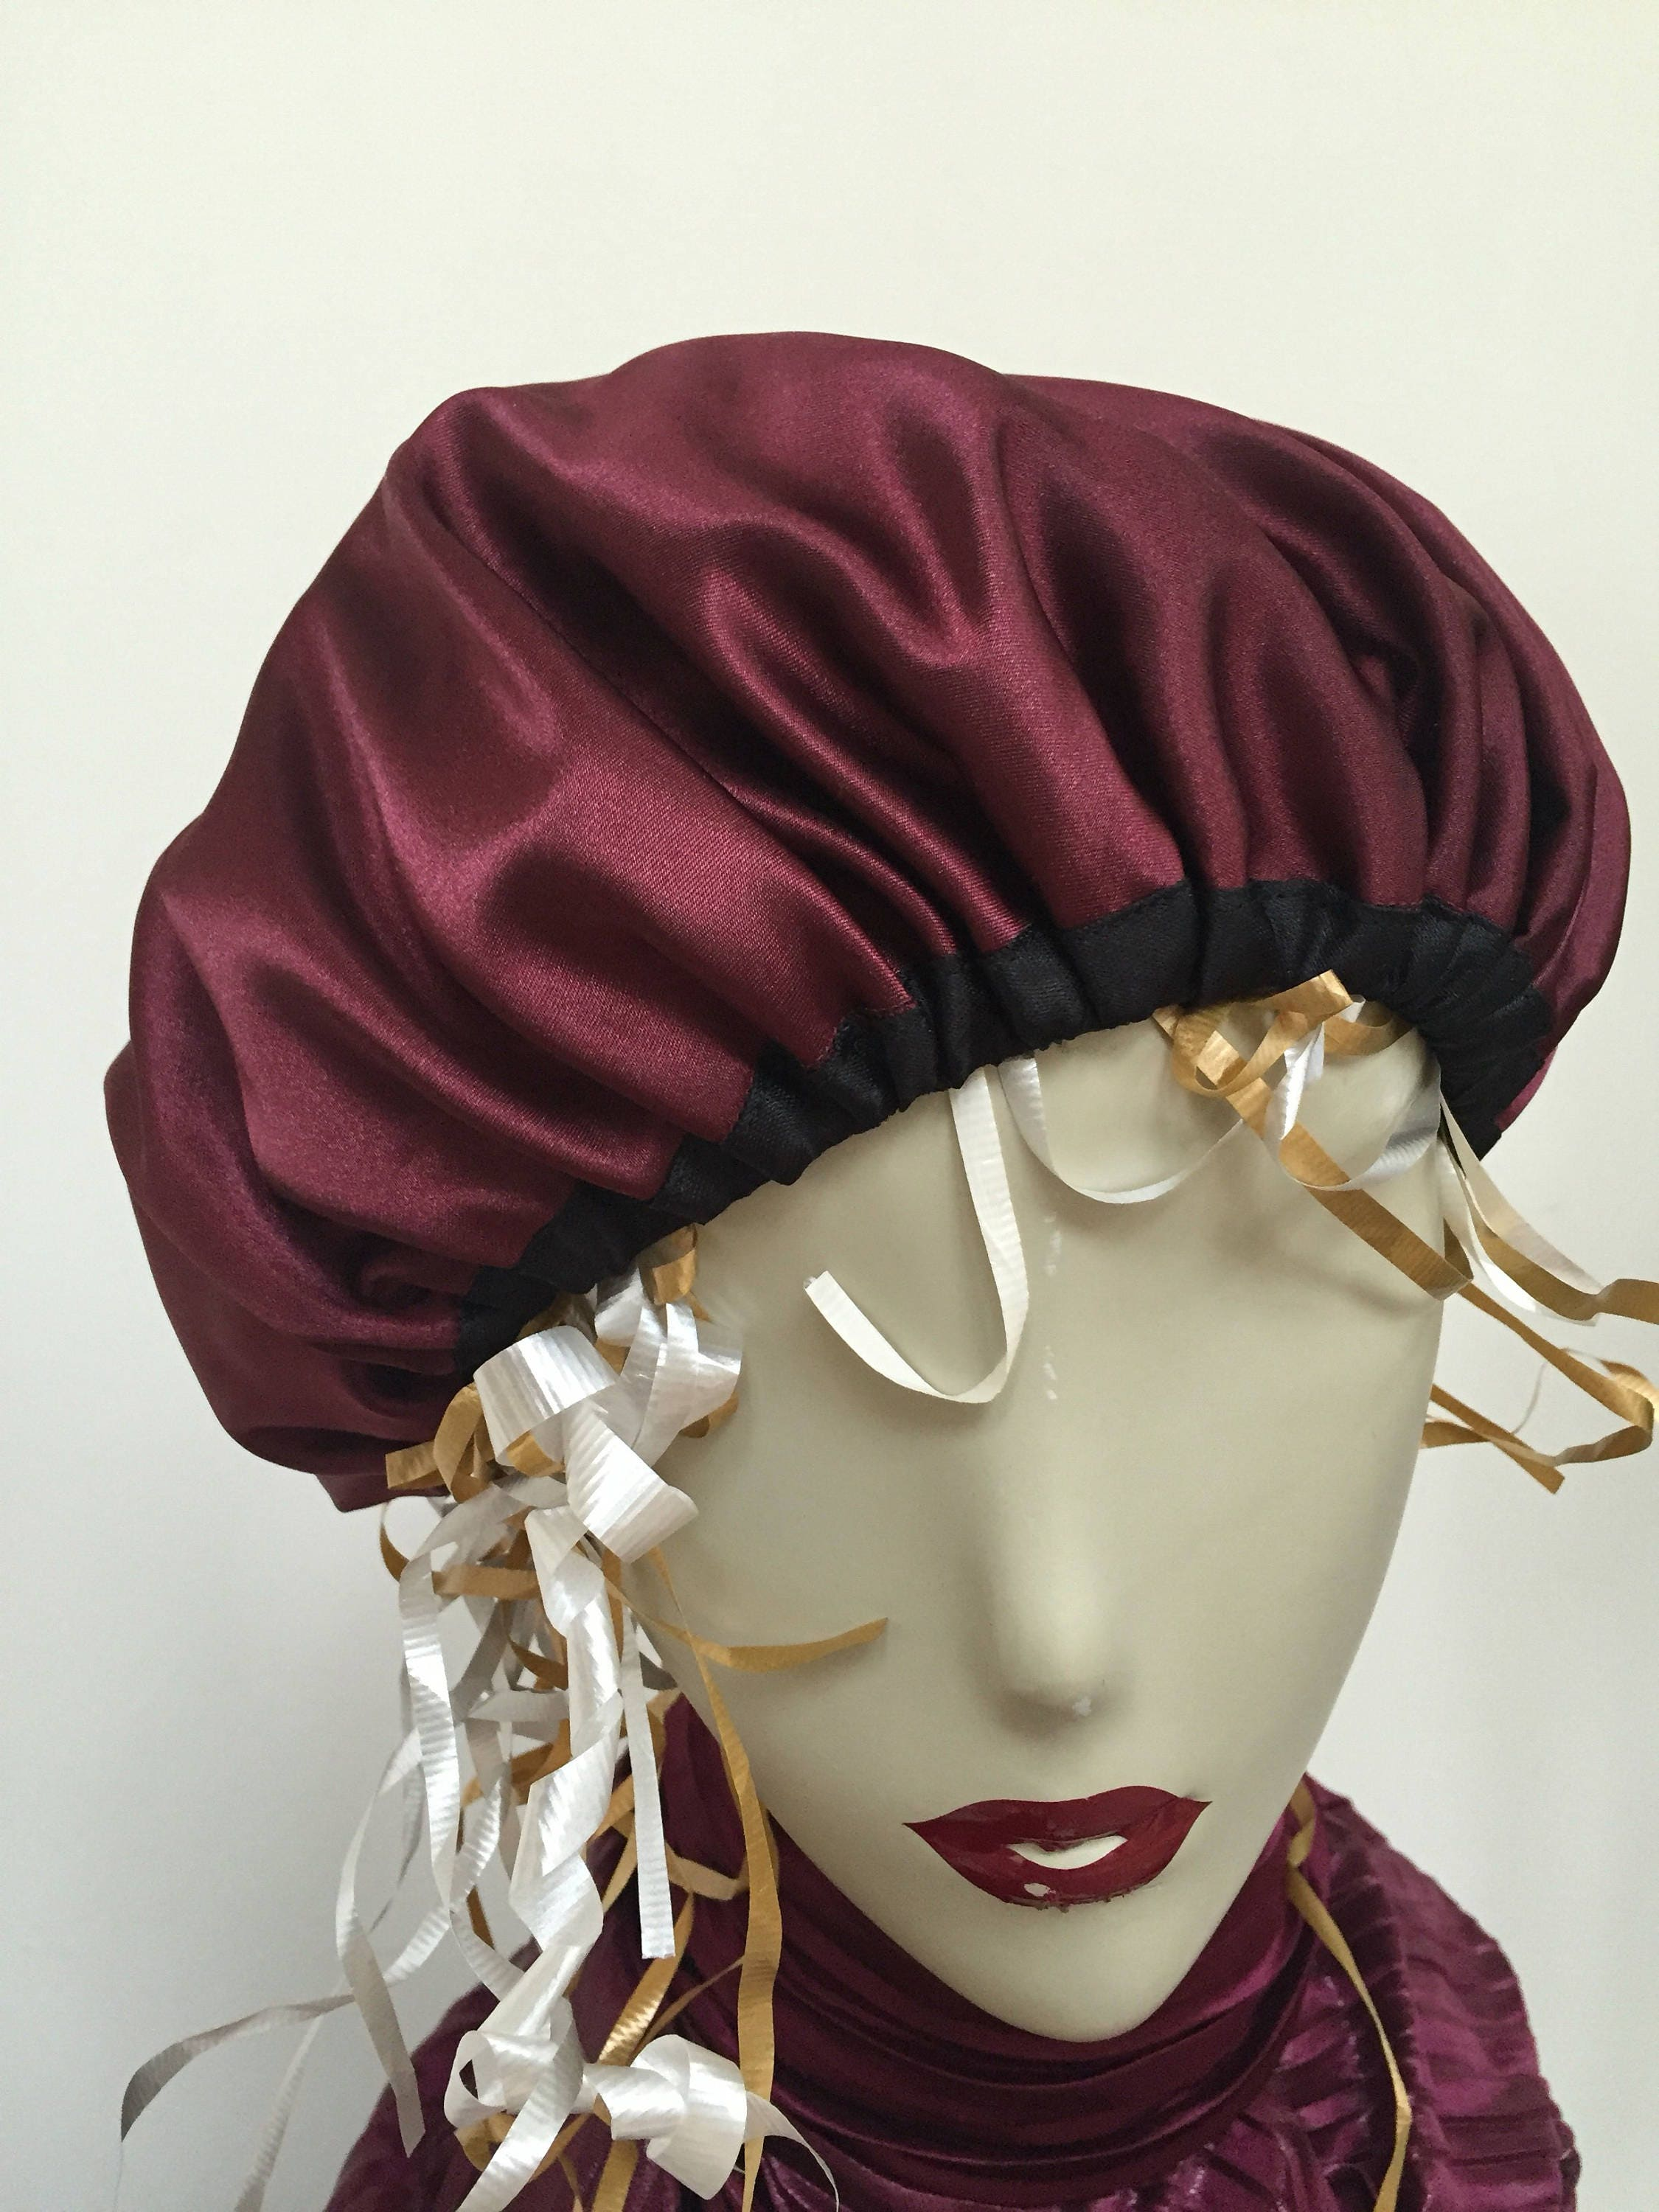 Woman's Burgundy Satin Sleep Cap. Fancy Wine Night Hat with Black Satin  Trim. One Adult Size. Christmas Holiday Gifts for Women.